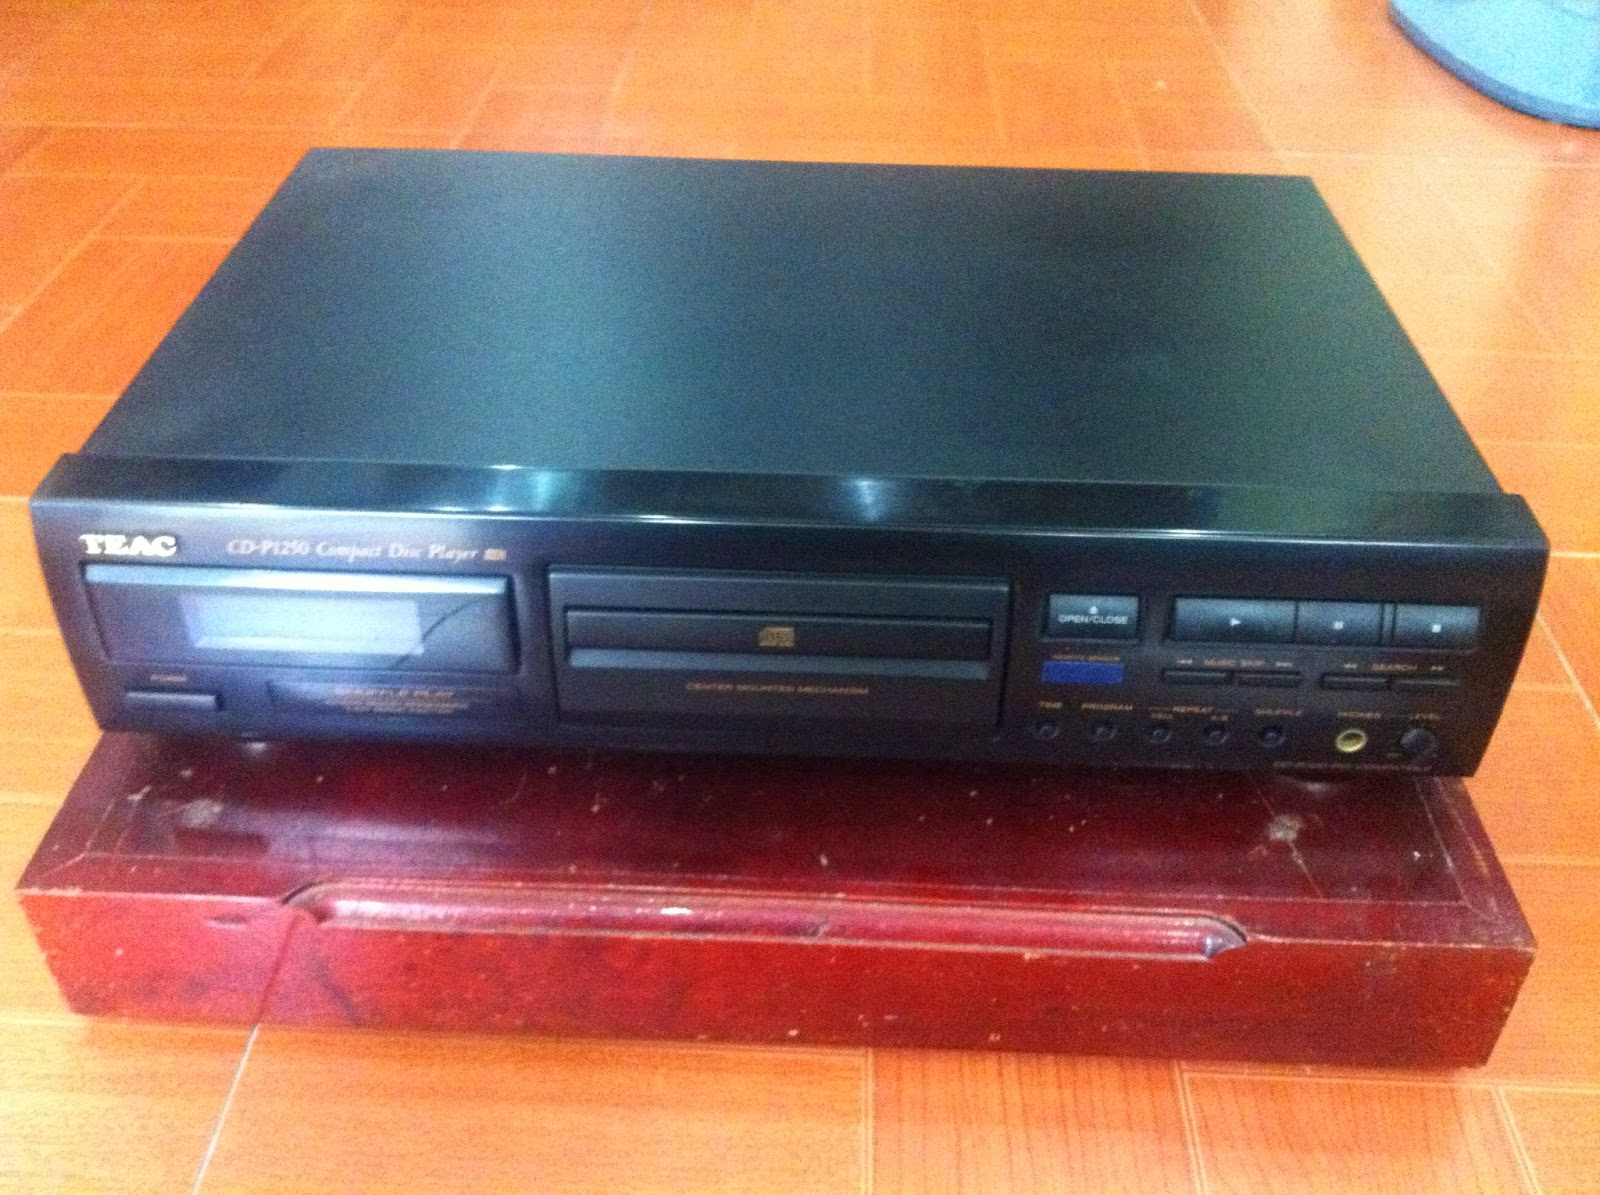 CD Player - TEAC - P1250 - Made in Japan